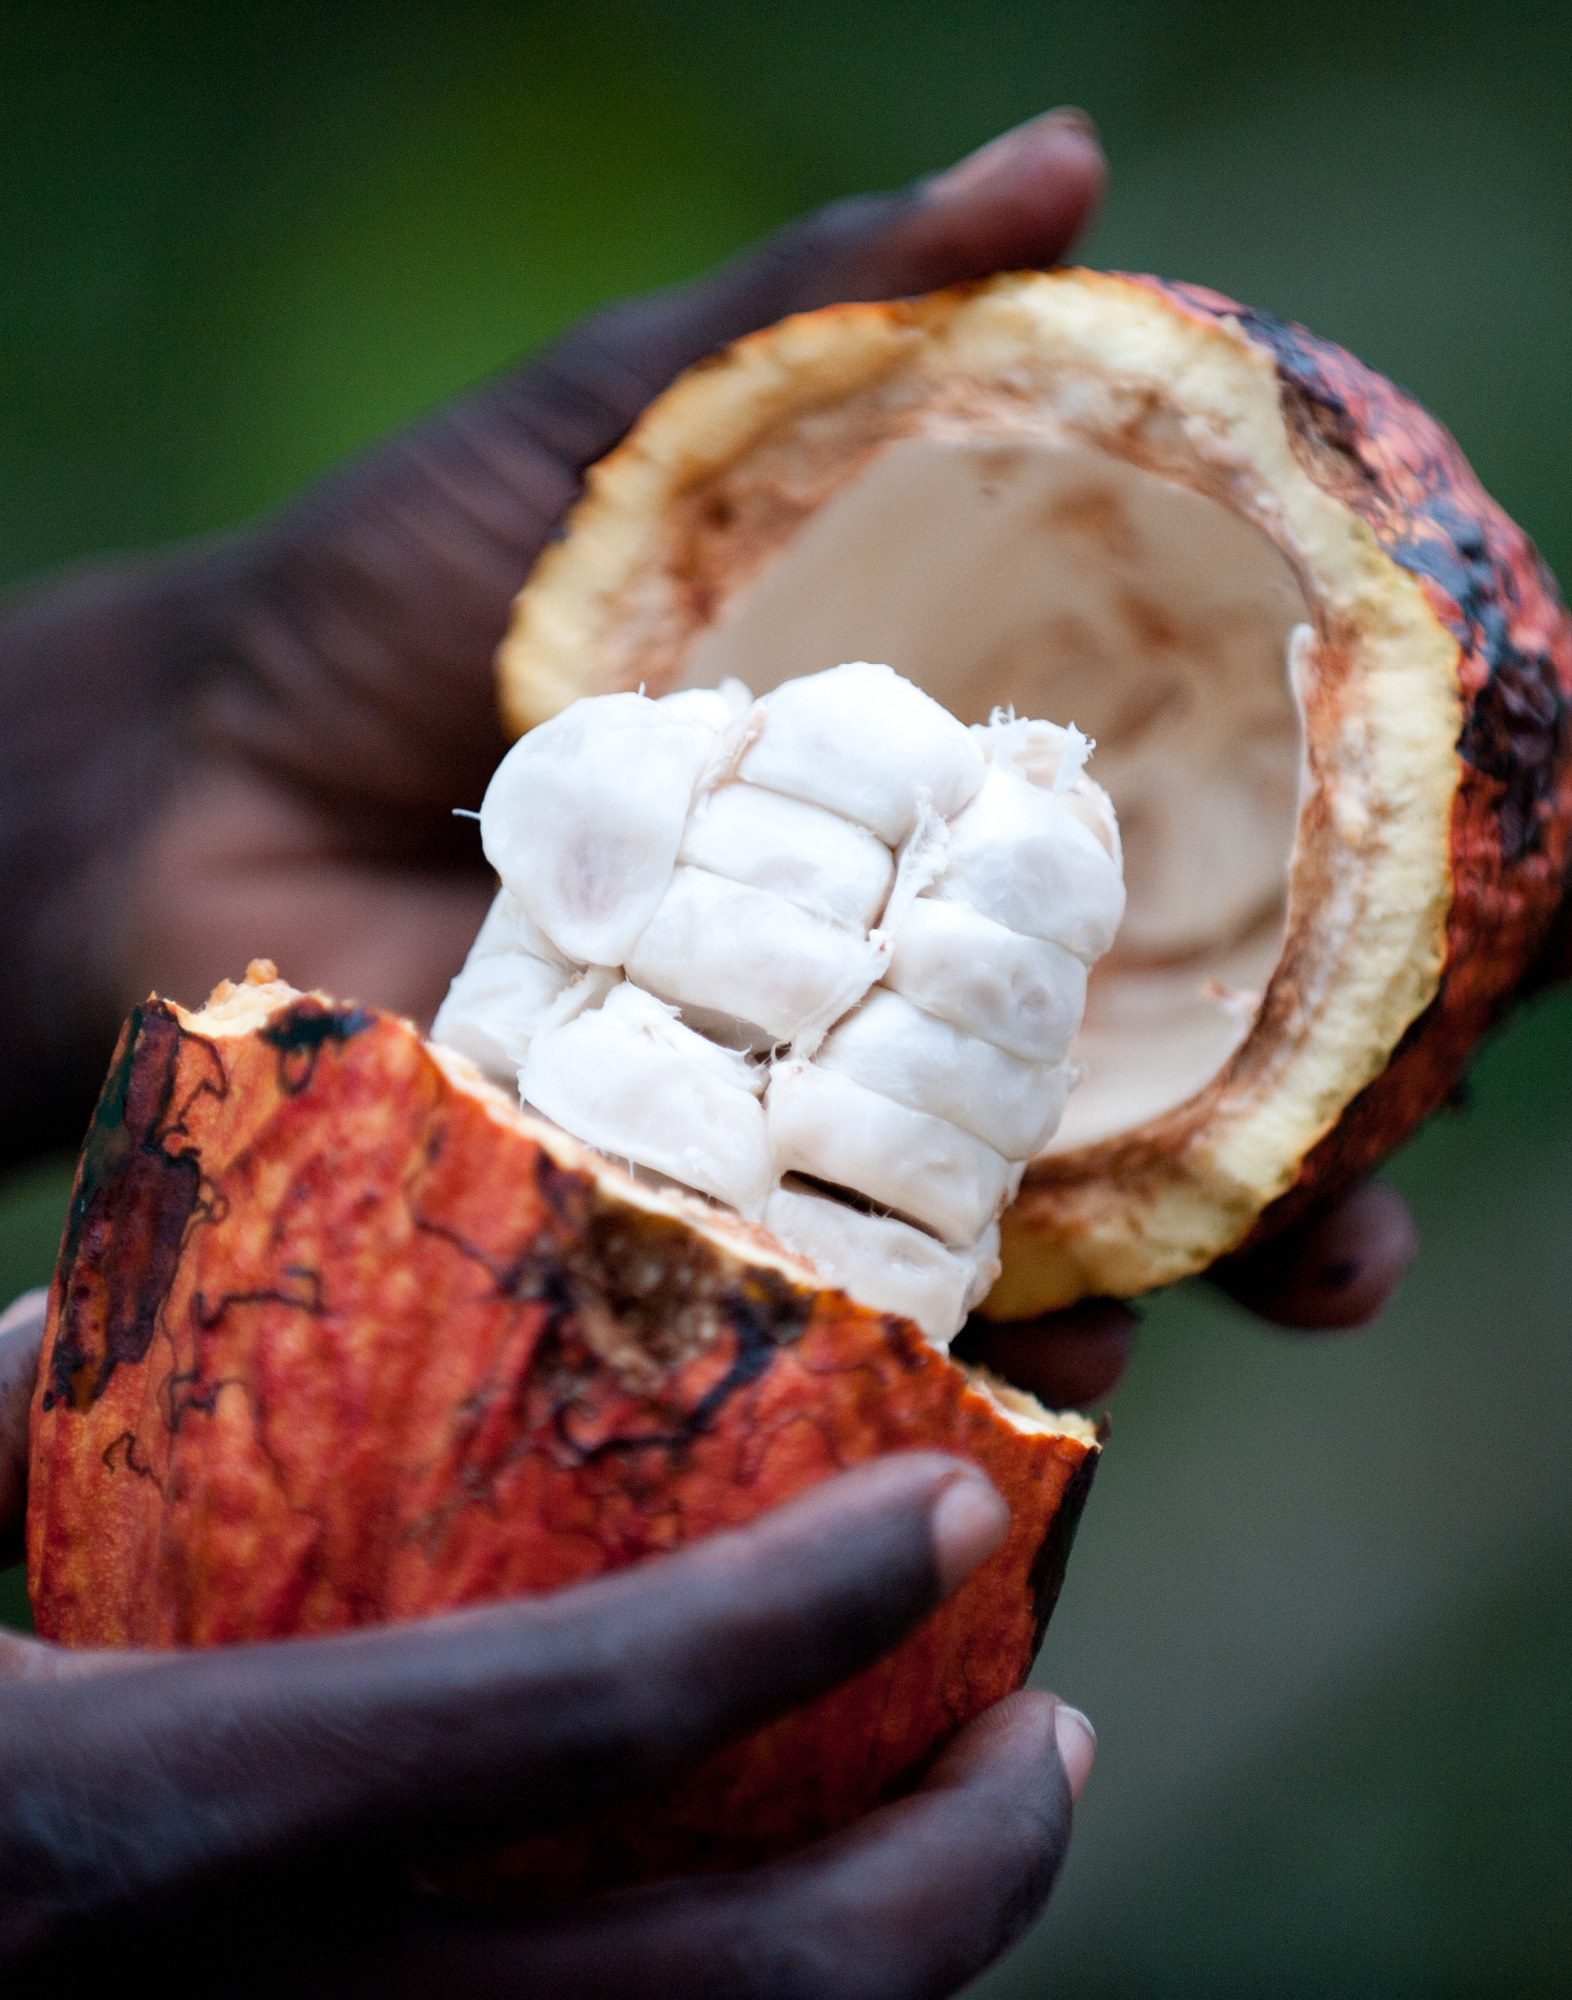 São Tomé & Príncipe produces some of the world's finest cacao beans